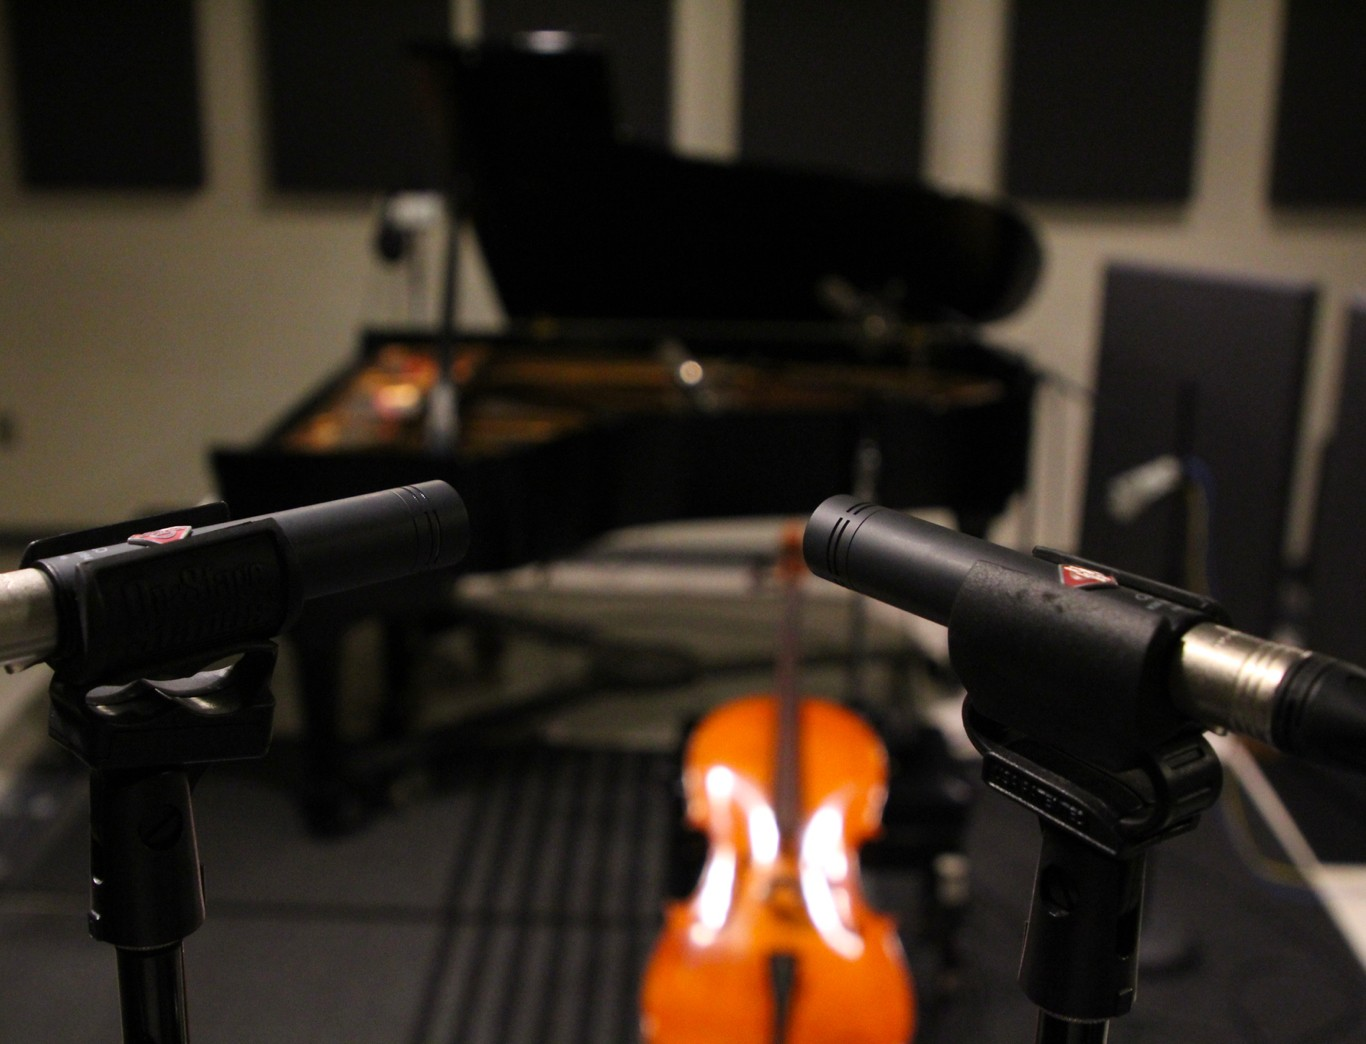 Microphones in the foreground, with instruments and recording equipment in the Penn State ROARS studio.